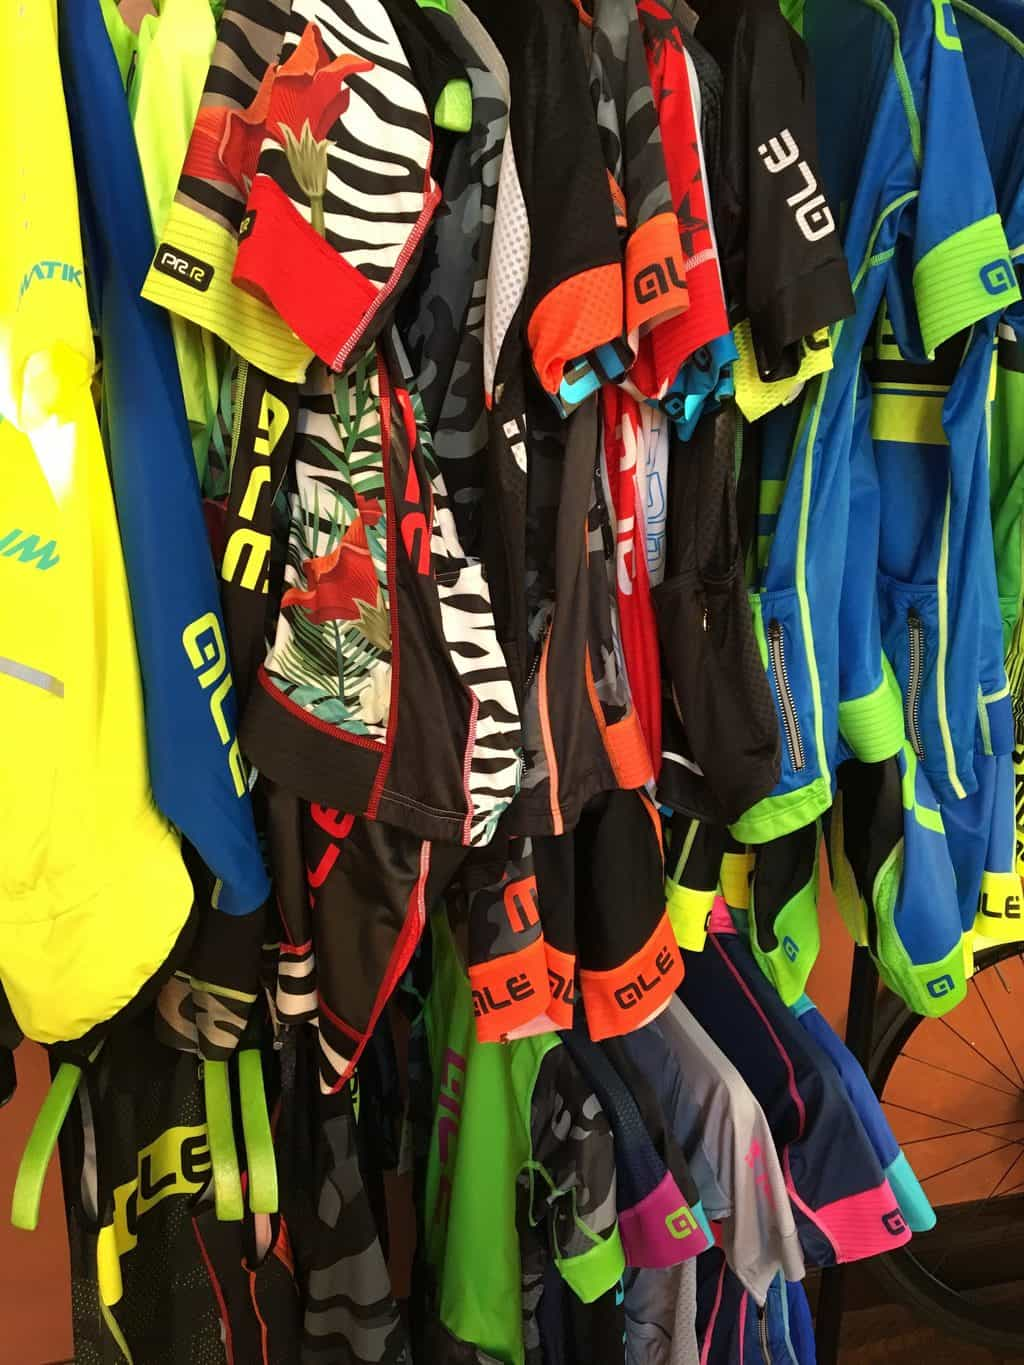 Ale Cycling had plenty of new designs to choose from and showed us their new way which they are offering custom design.